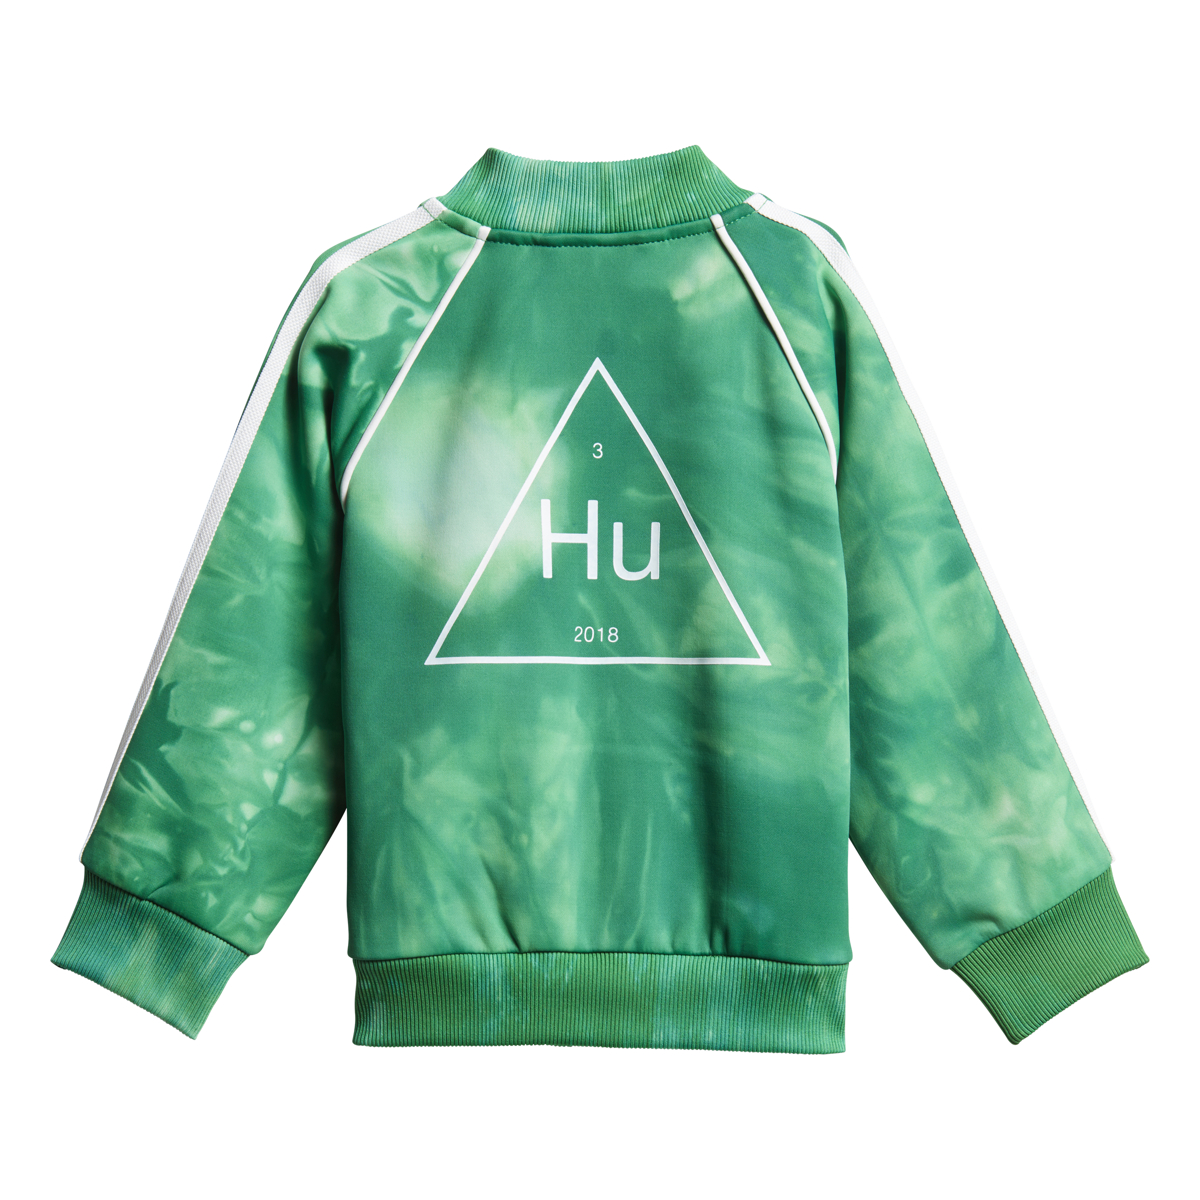 Details about Adidas Pharrell Williams HU Holi Infant Superstar Track Suit Green cz0721